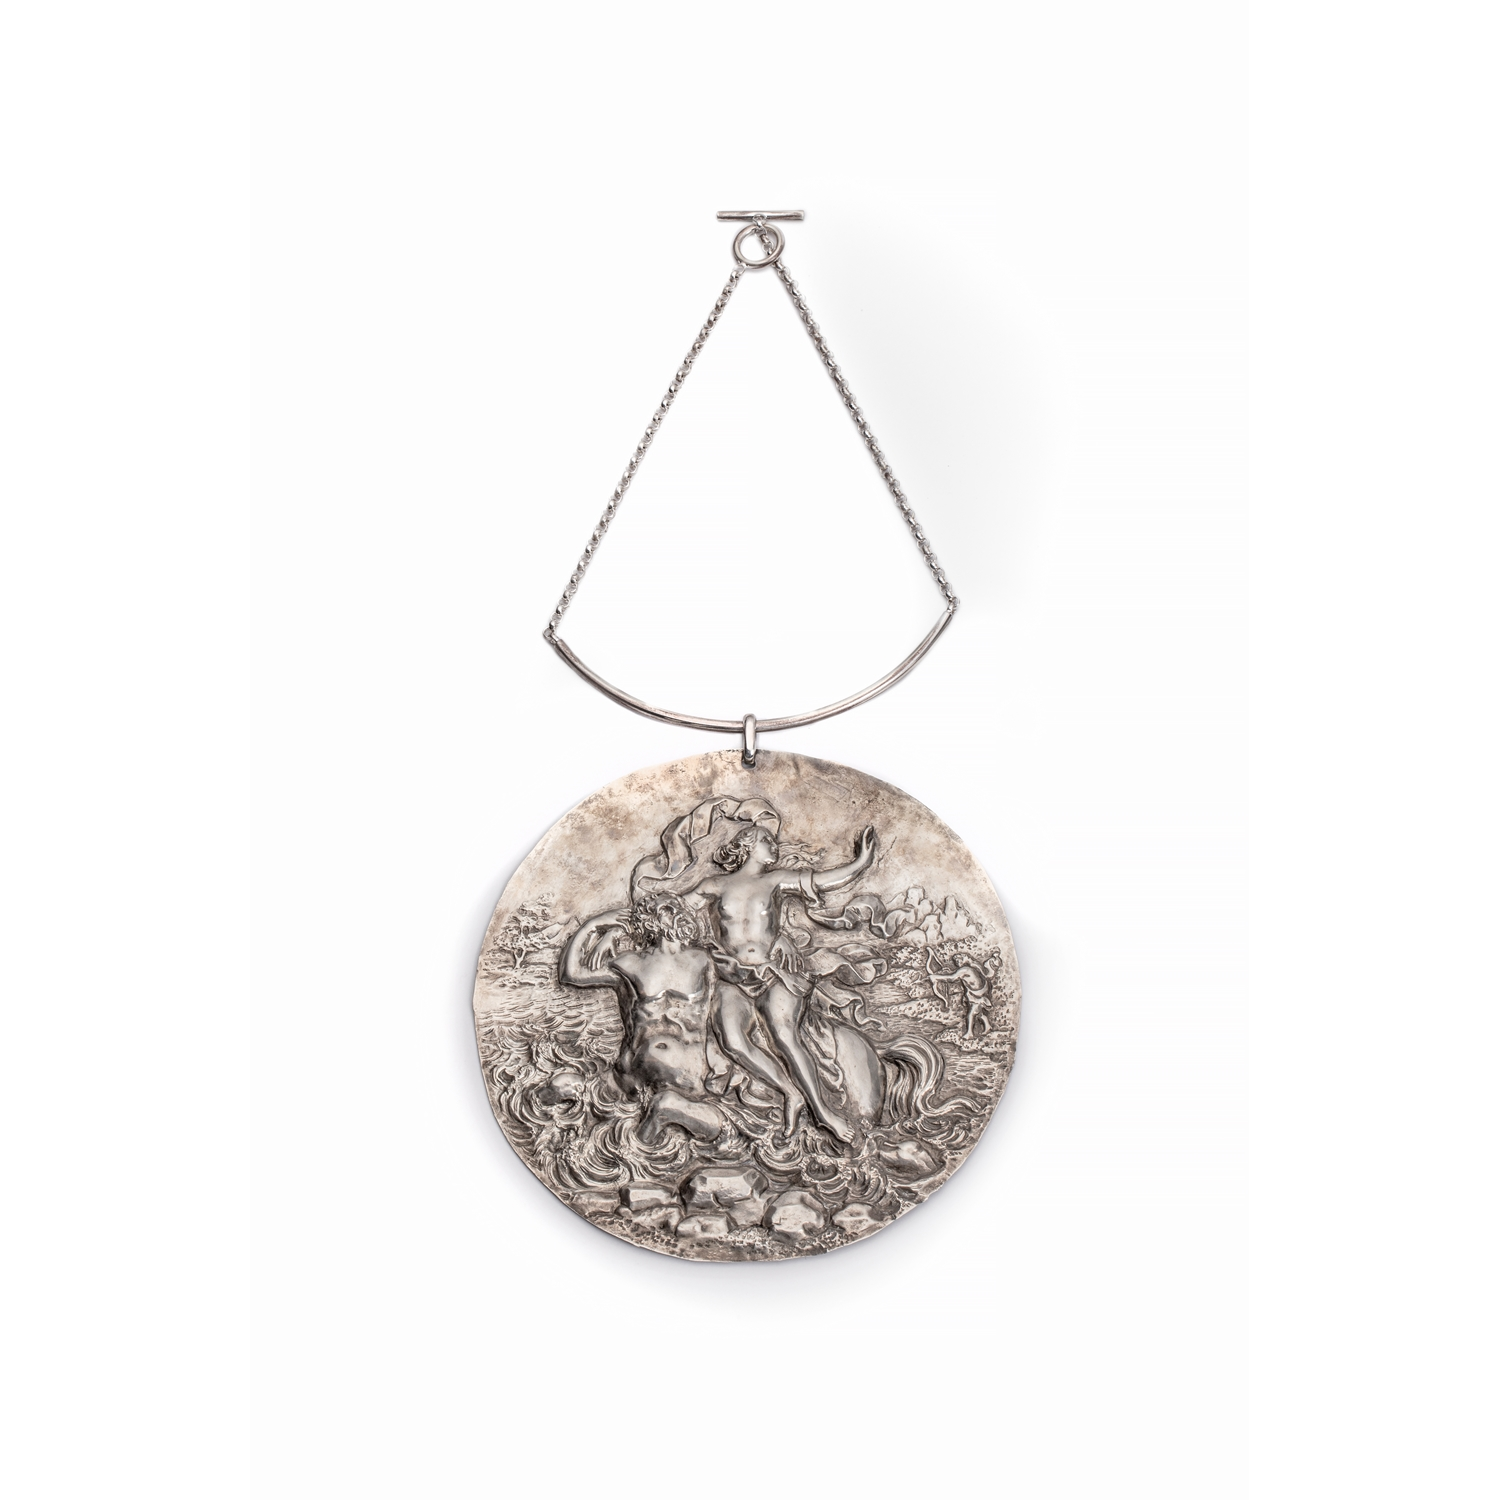 UNIQUE LARGE NECKLACE WITH A BAROQUE PLAQUE WITH A MYTHOLOGICAL SCENE FROM THE METAMORPHOSES OF OVID